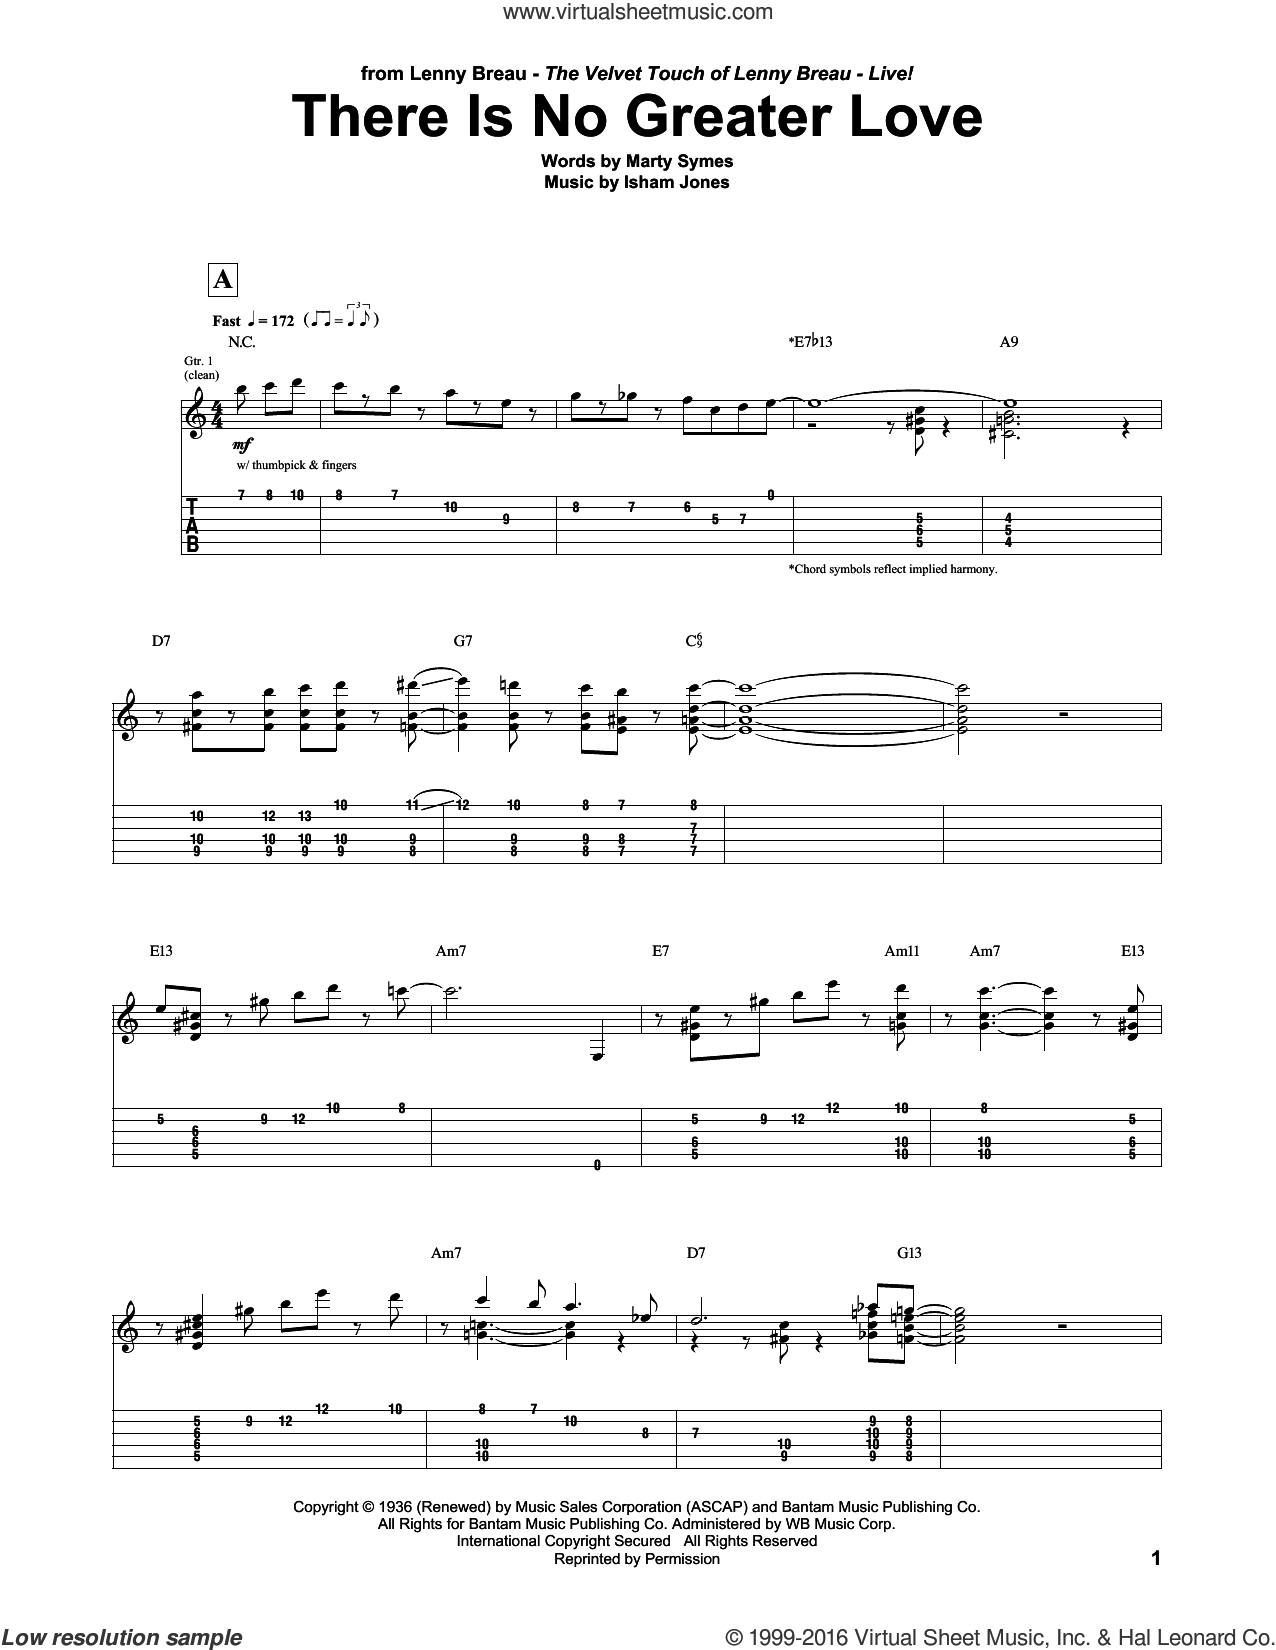 There Is No Greater Love sheet music for guitar (tablature) by Marty Symes, Lenny Breau and Isham Jones. Score Image Preview.